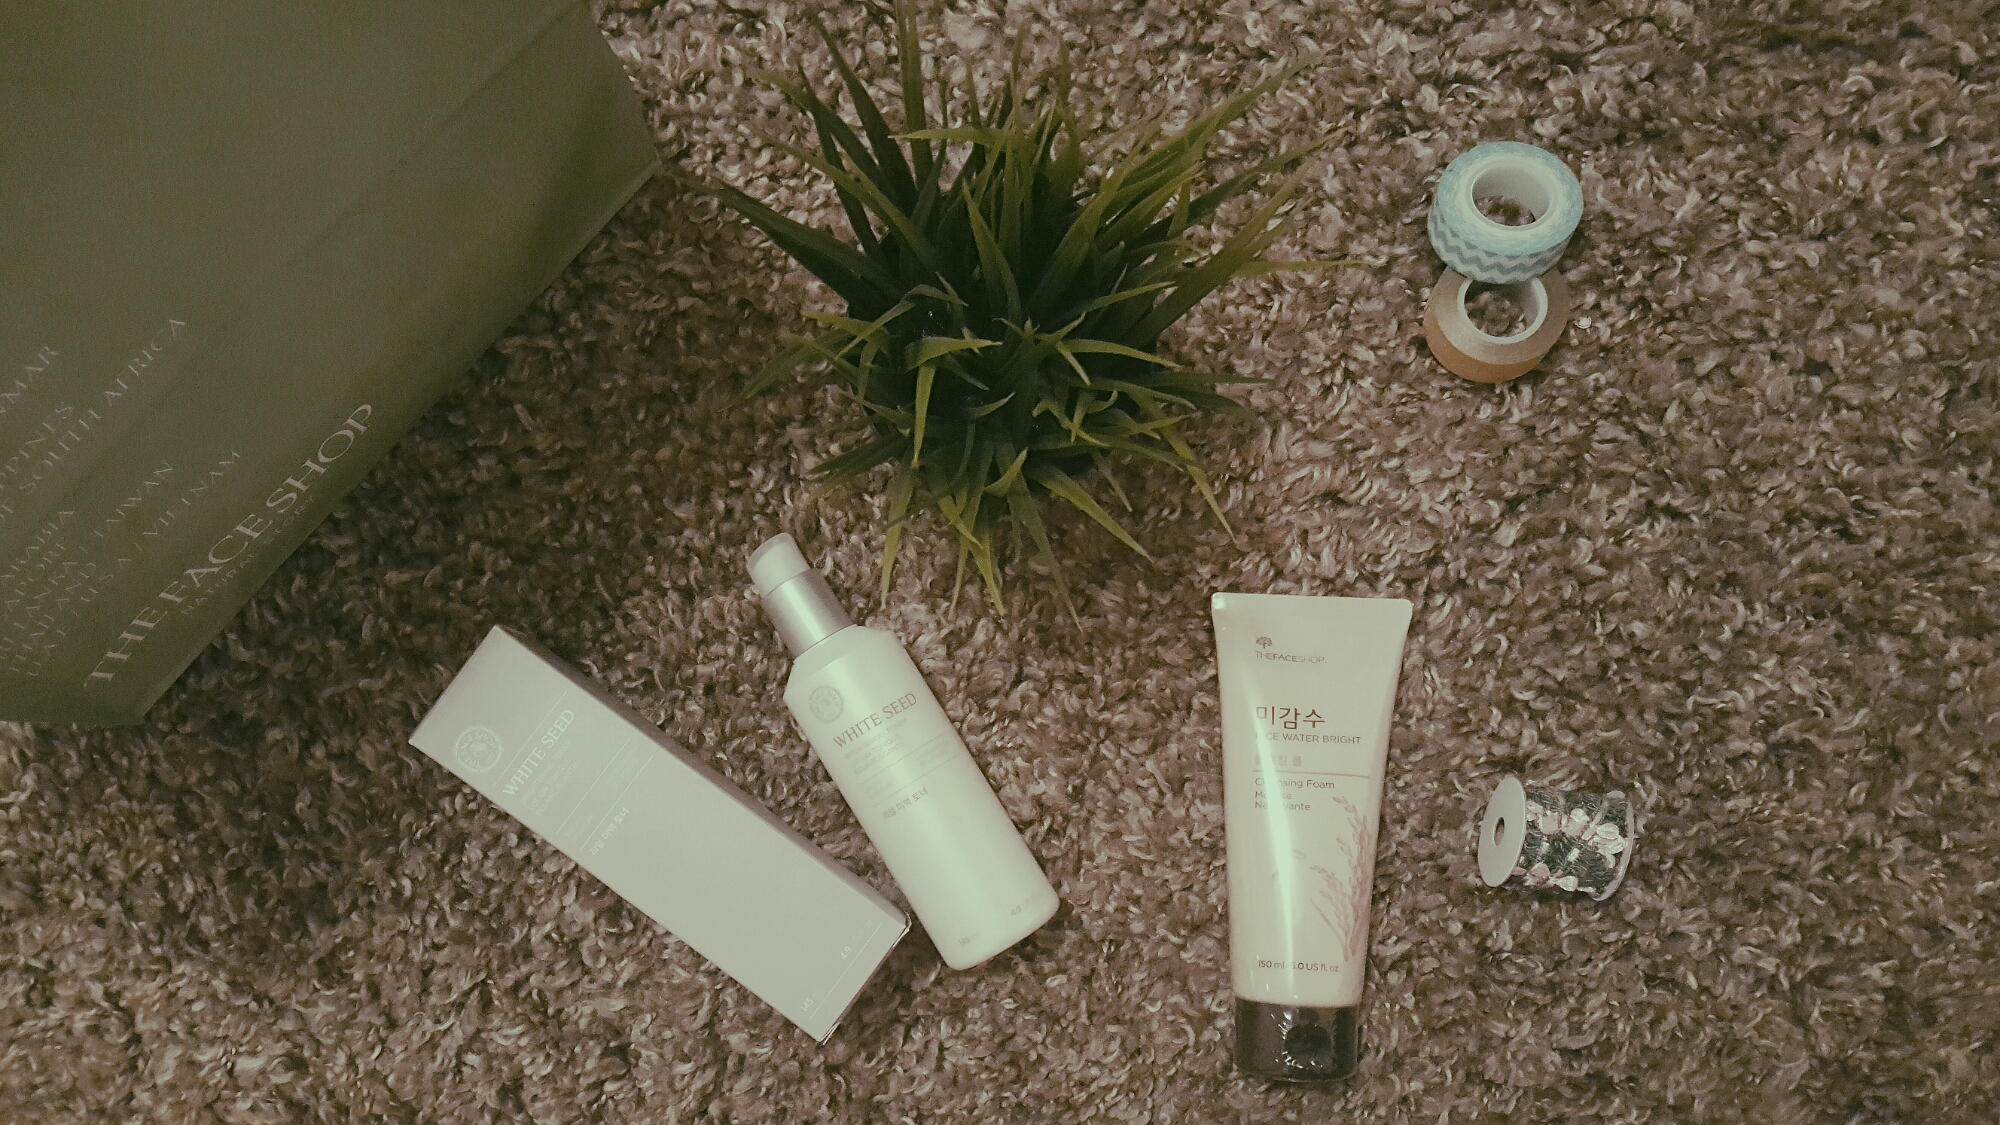 wp image 870141703jpg - 3-Item THEFACESHOP Haul Review! (WHITE SEED Brightening Toner, RICE WATER BRIGHT Cleansing Foam & Magic Cover BB Cream)